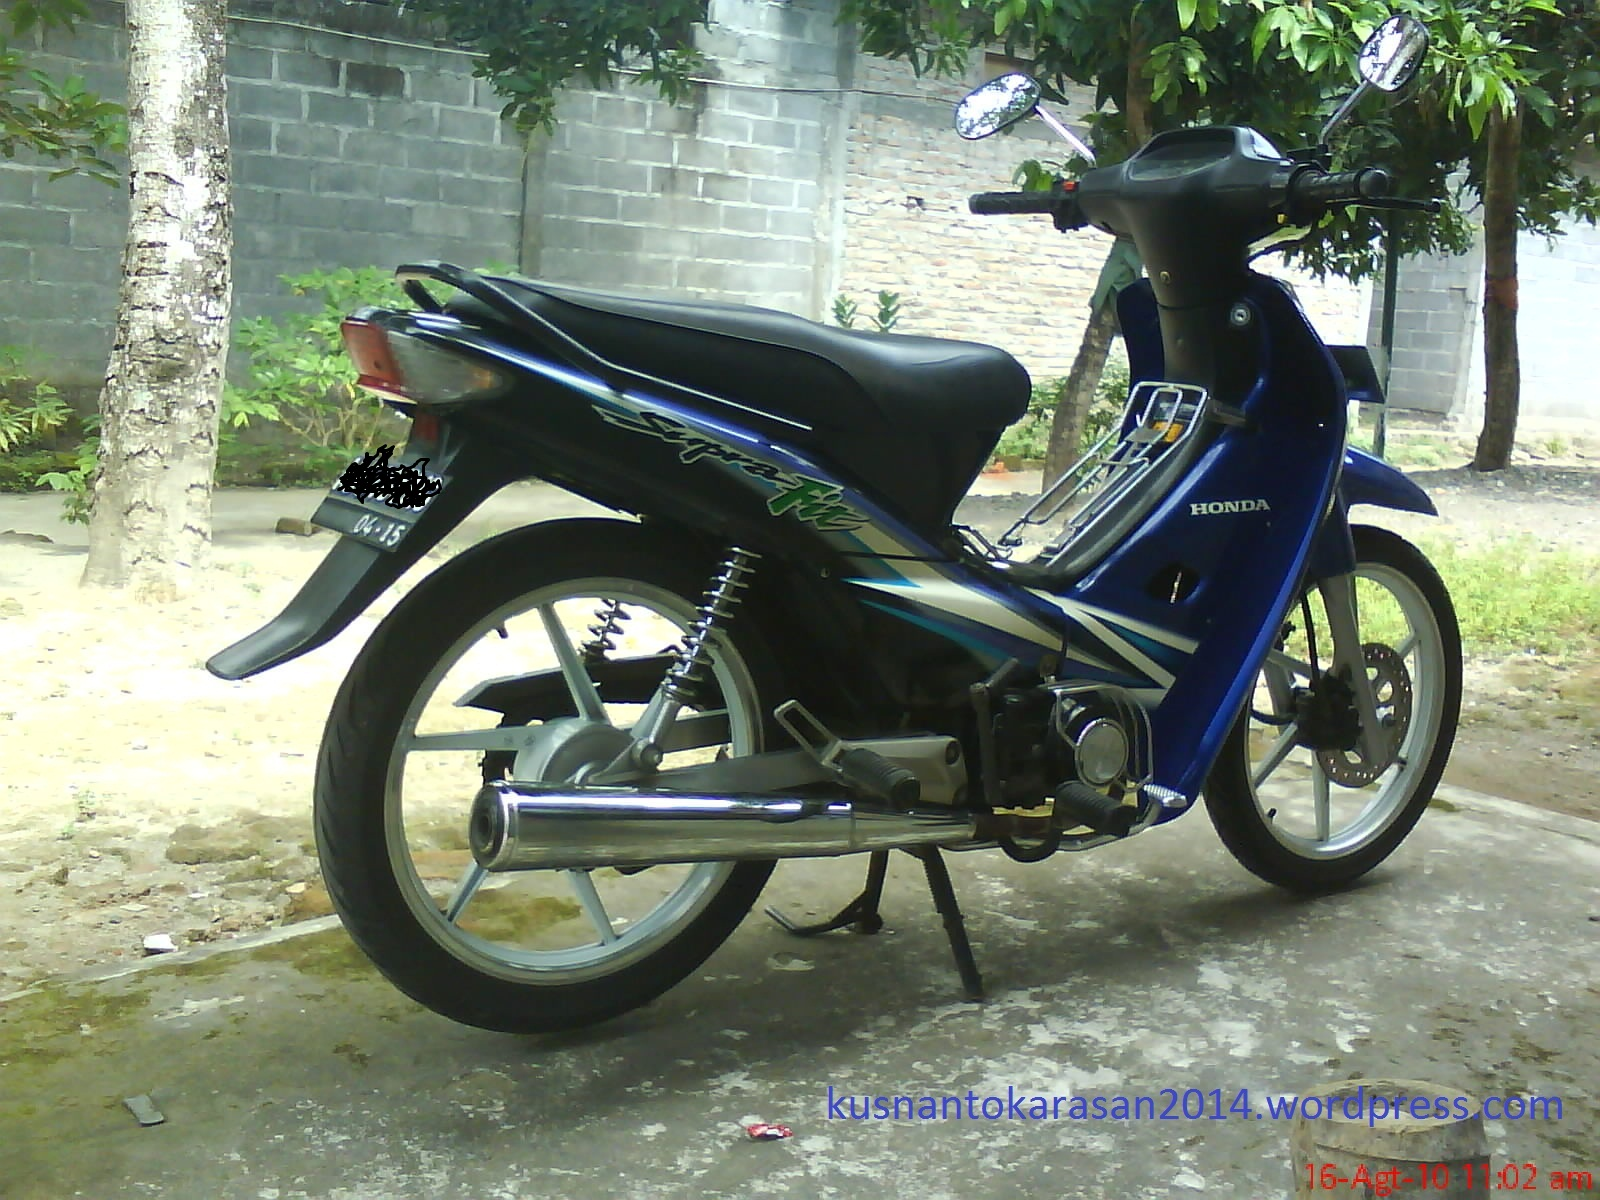 Harga Motor New Supra Fit 2005 Chicago Criminal And